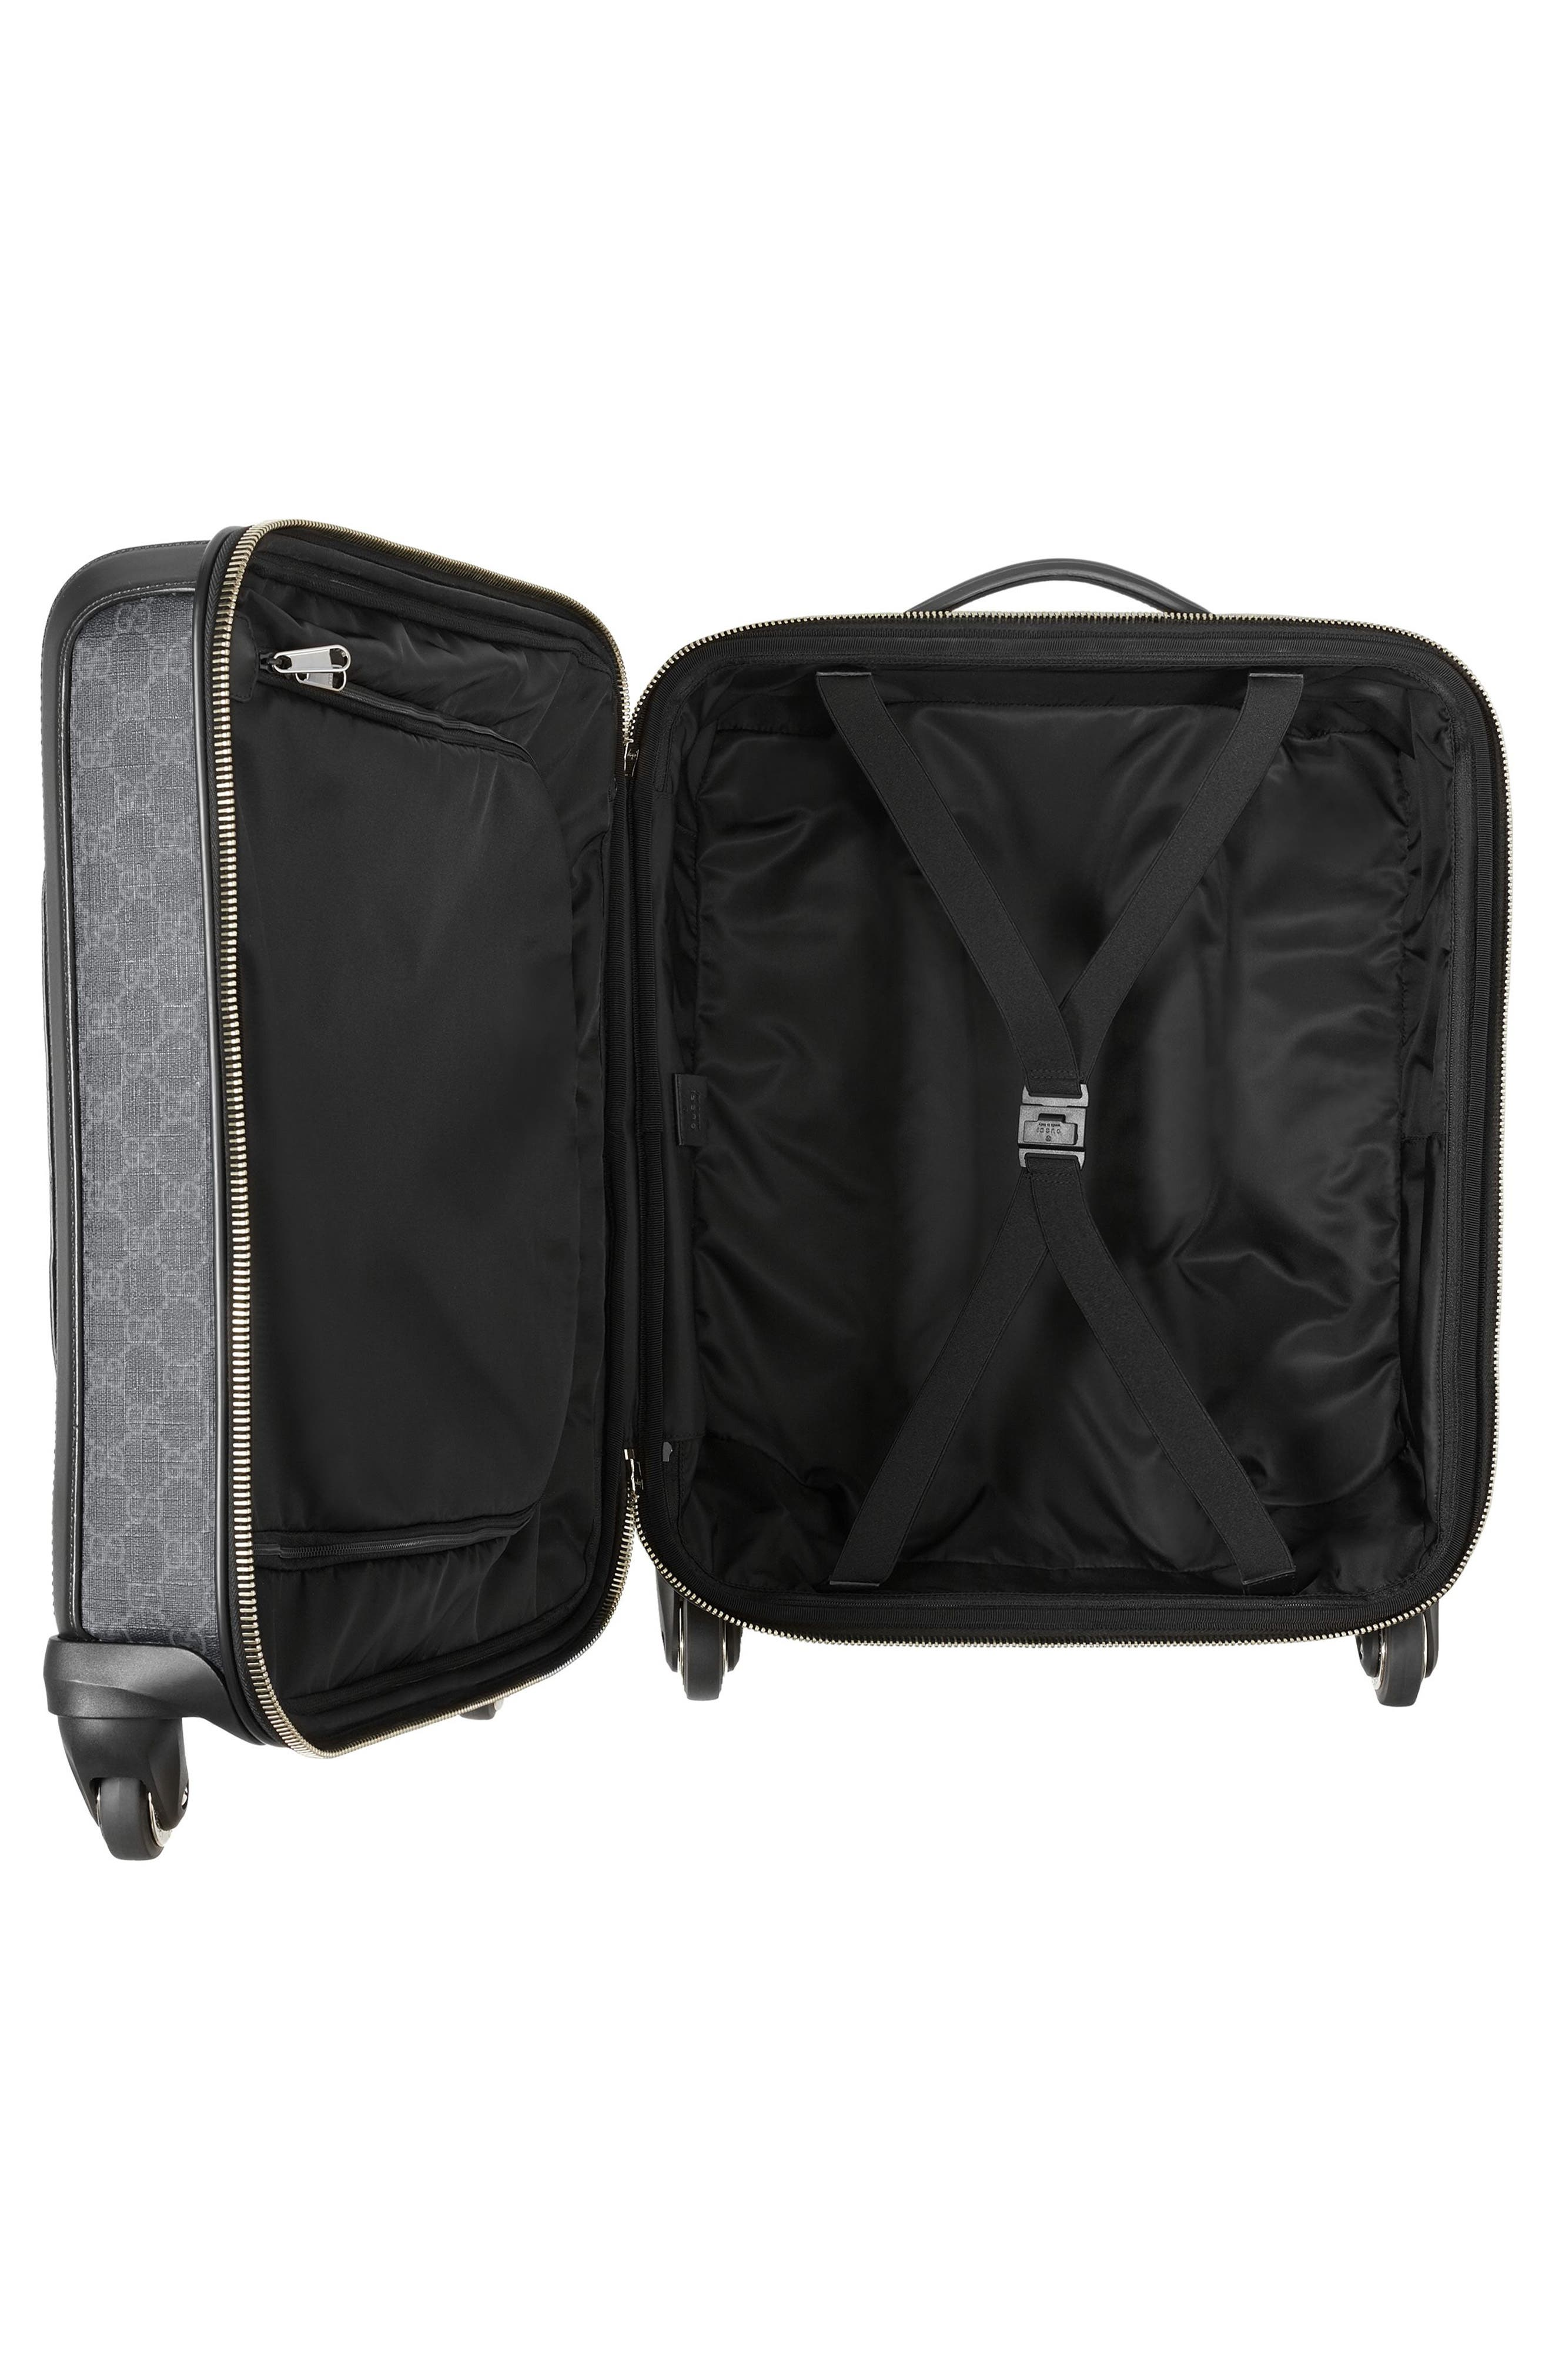 Gran Turismo 19-Inch Carry-On,                             Alternate thumbnail 2, color,                             BLACK